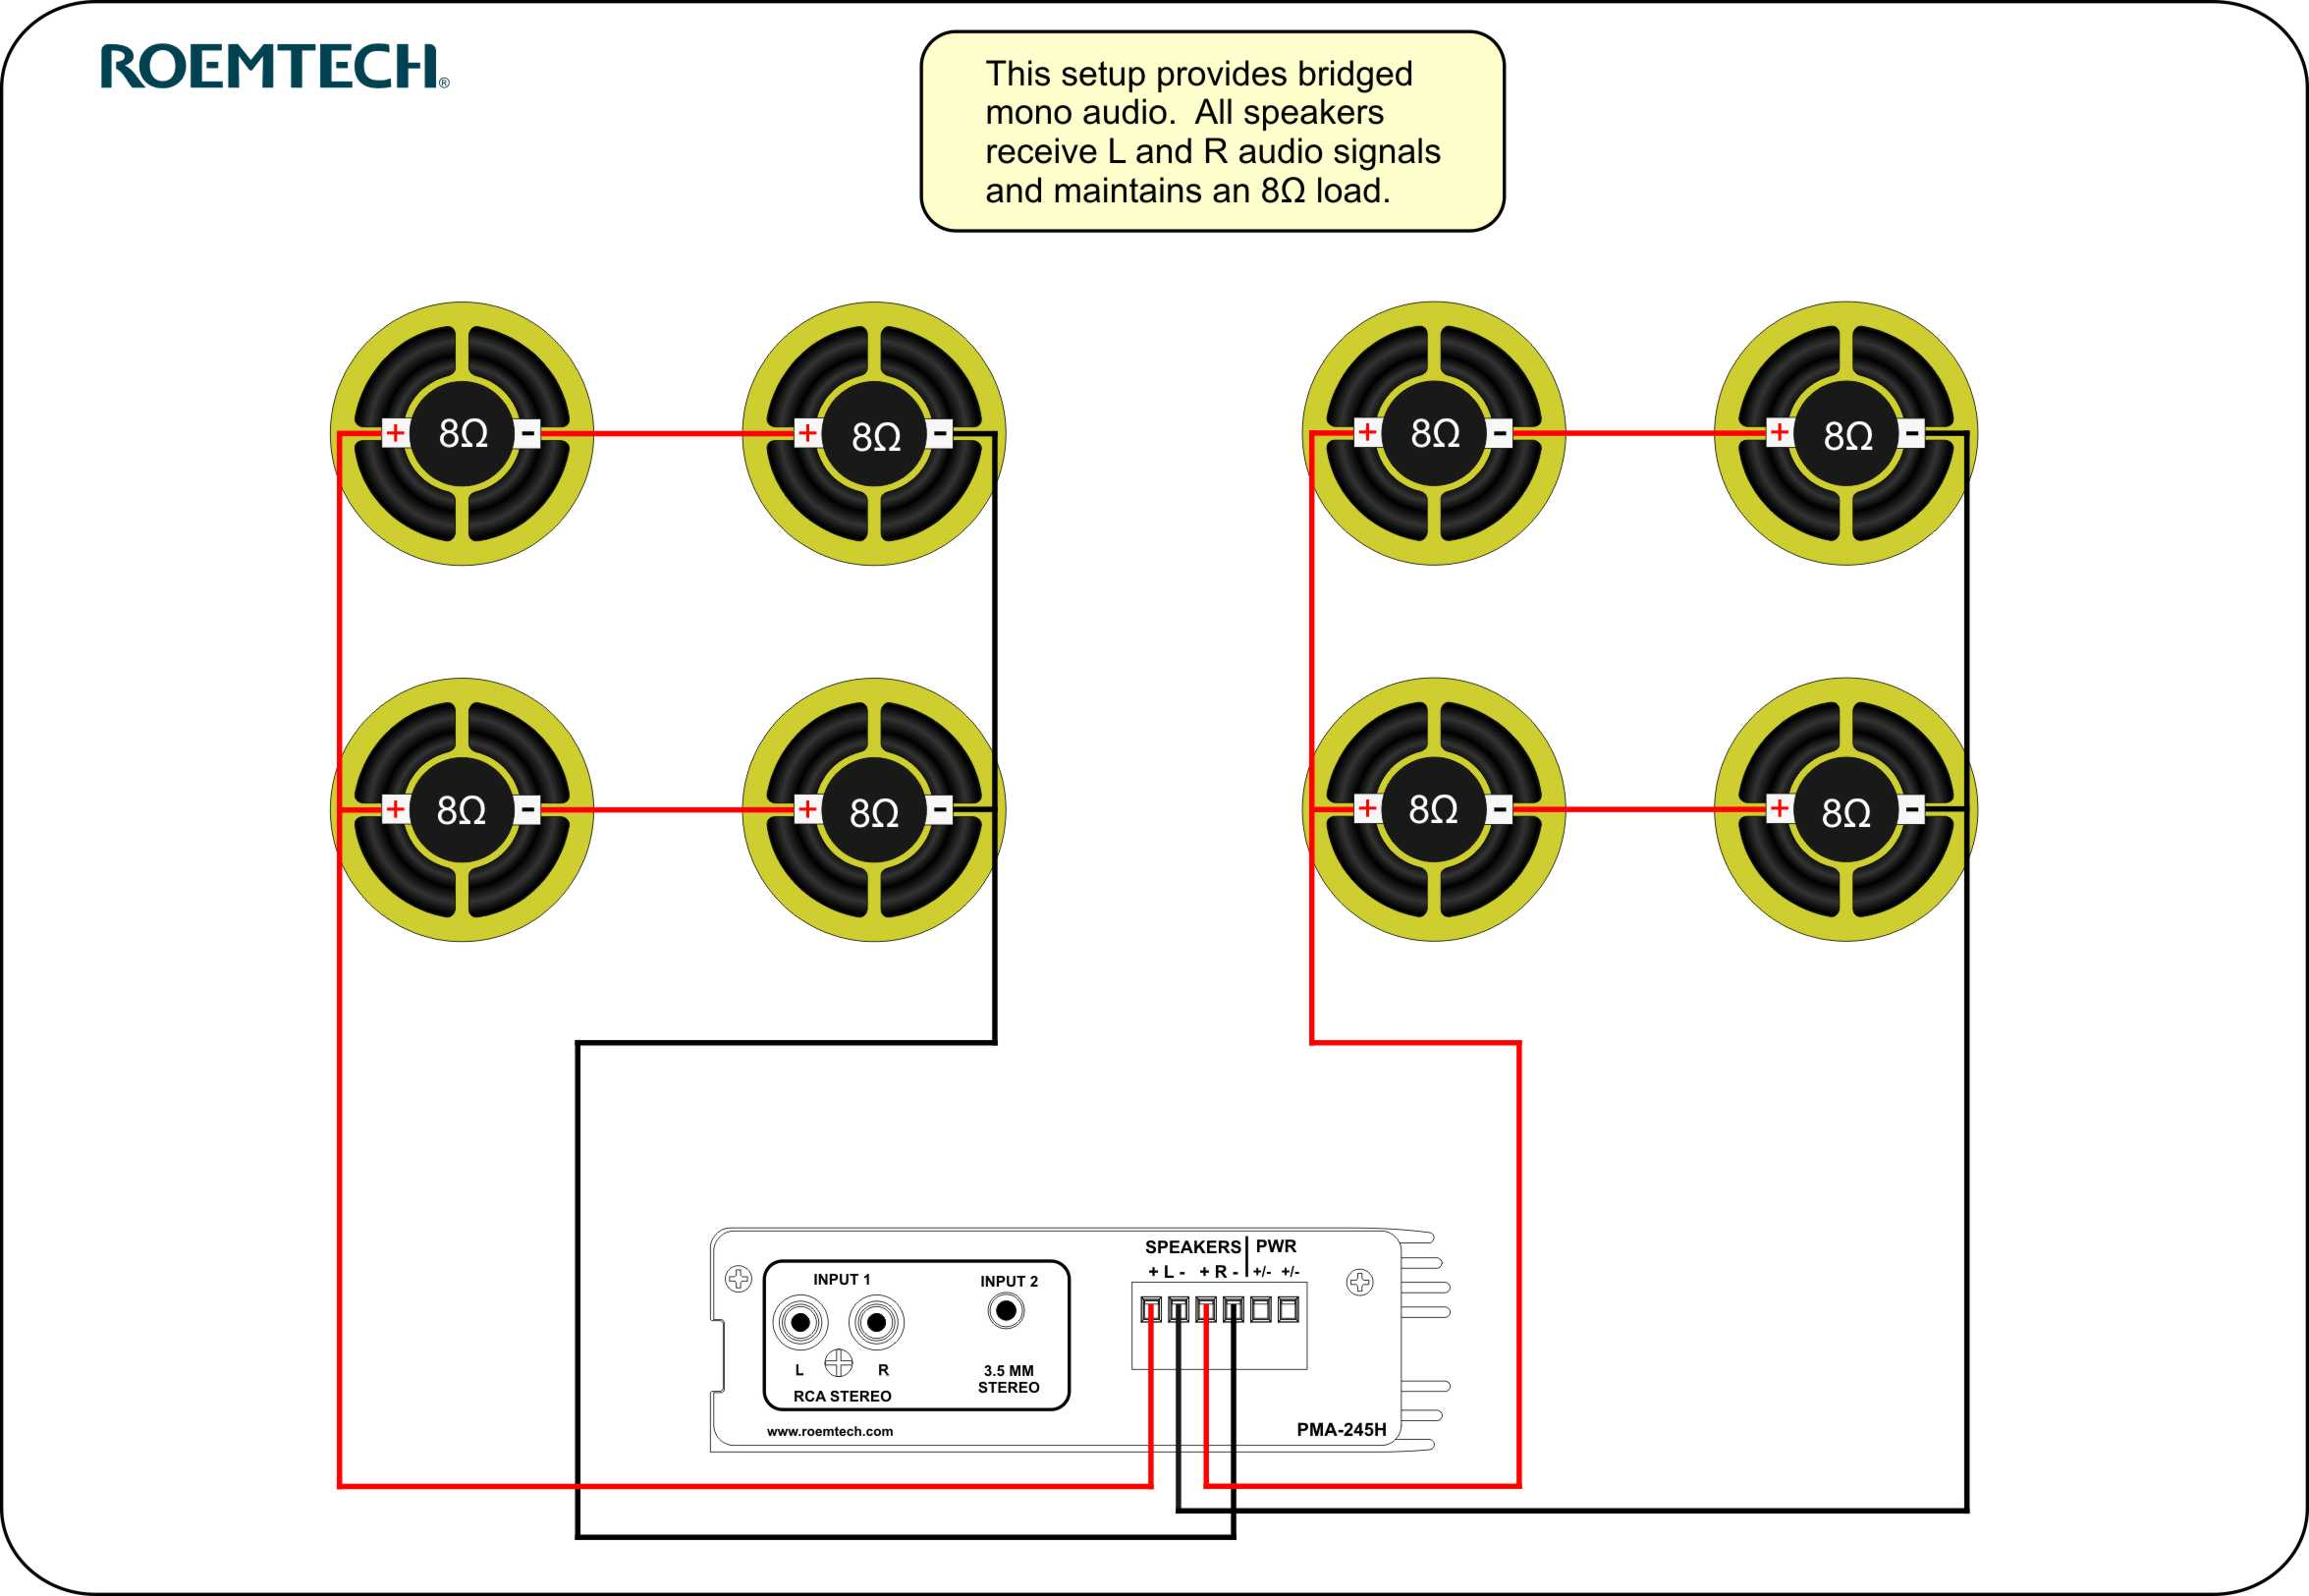 classroom_audio_multiple_speaker classroom audio systems multiple speaker wiring diagram speaker wiring diagram at reclaimingppi.co